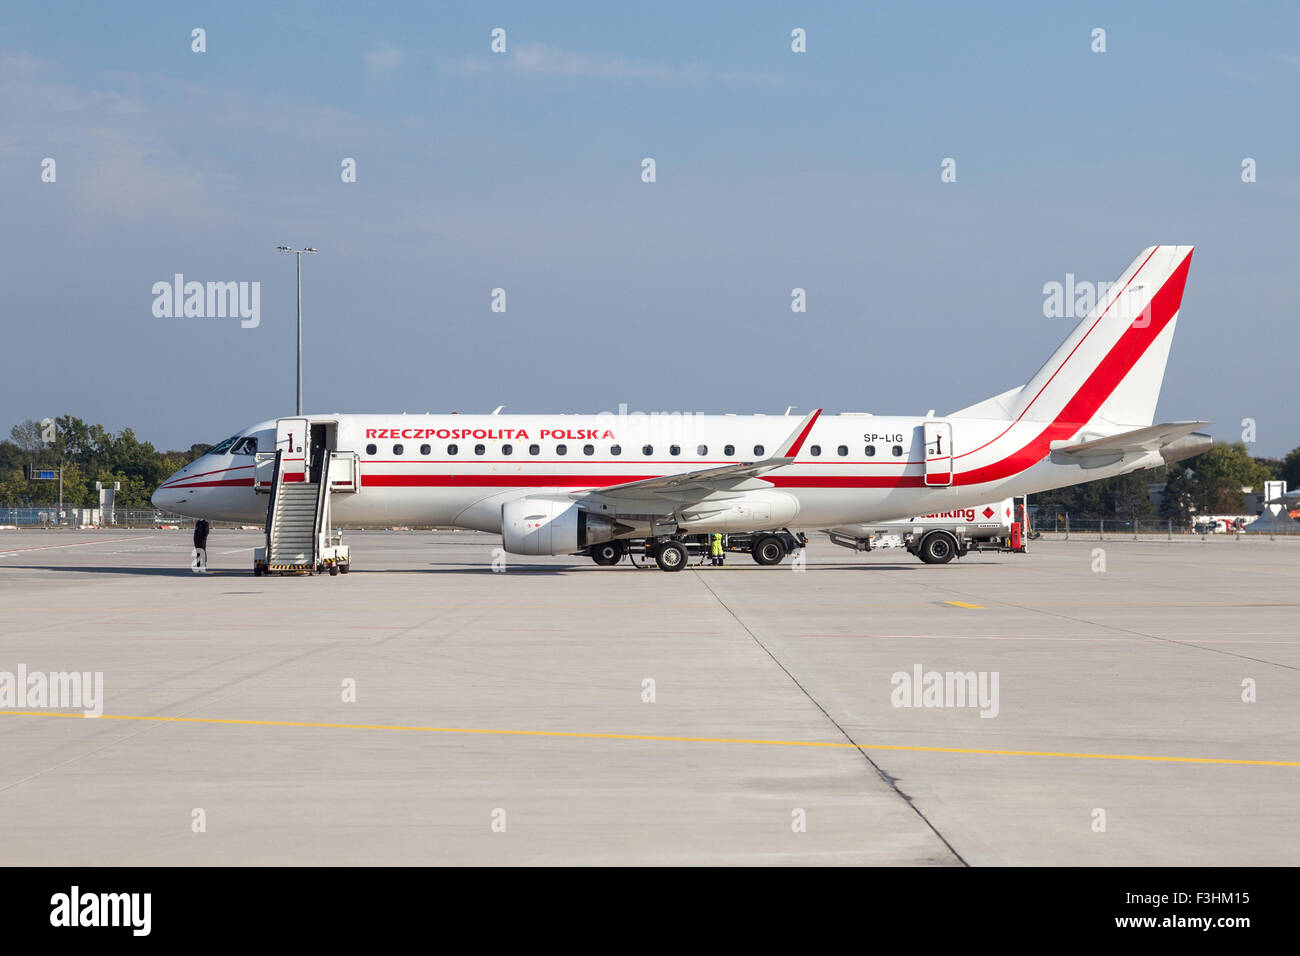 Embraer ERJ-175LR of the Polish Government at the Frankfurt Airport - Stock Image